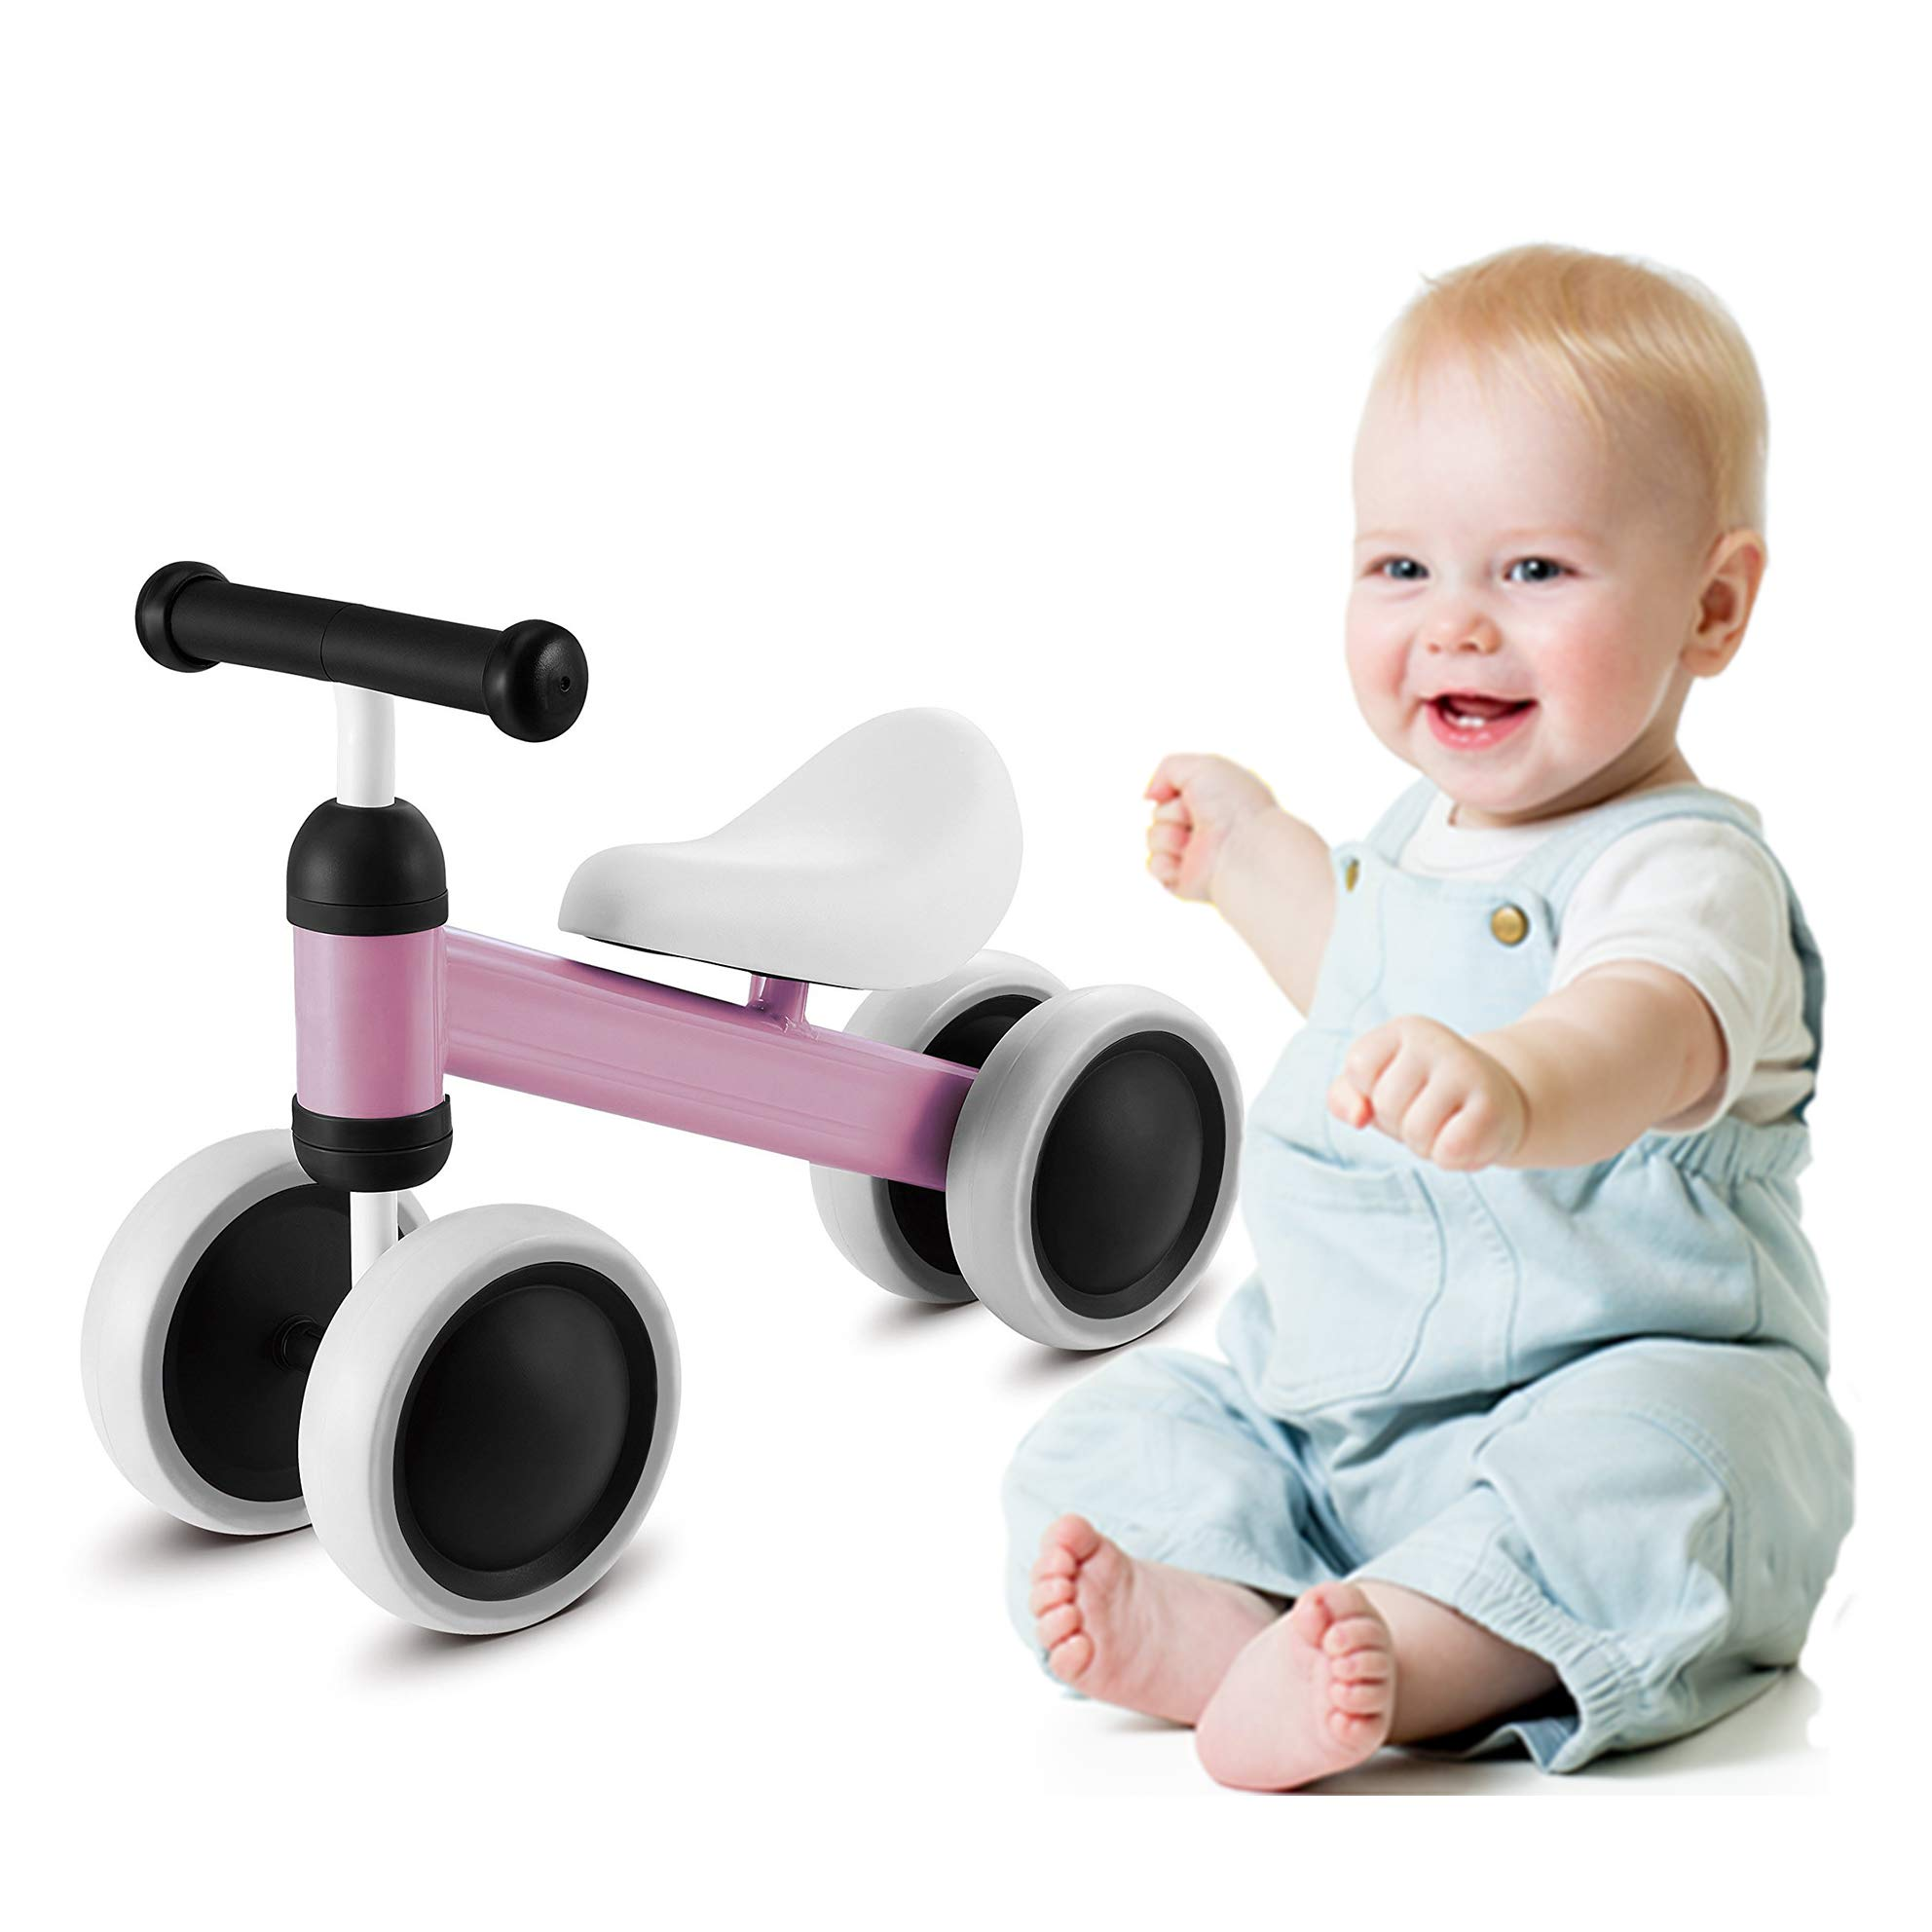 MammyGol Baby Balance Bikes Bicycle Children Walker 10-36 Months No Pedal Infant 4 Wheels Baby Bike for 1 Year Old Toys Rides First Birthday New Year Gift